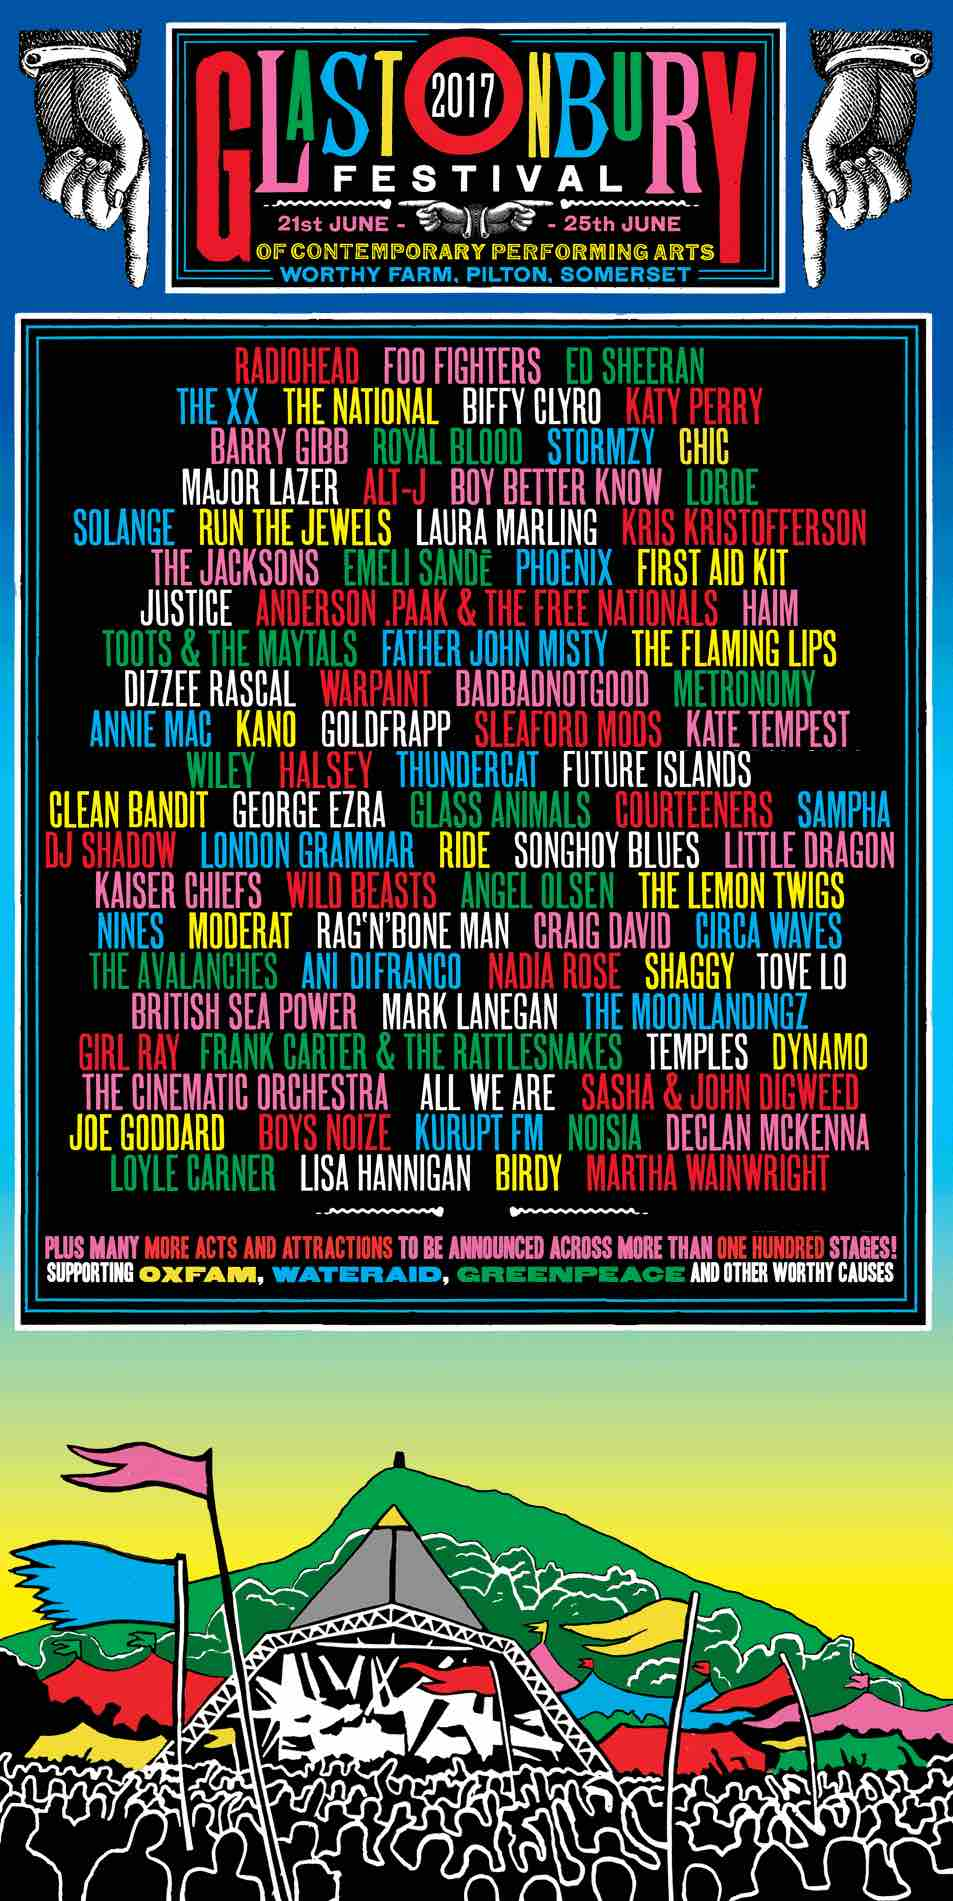 Glastonbury 2017 line-up poster